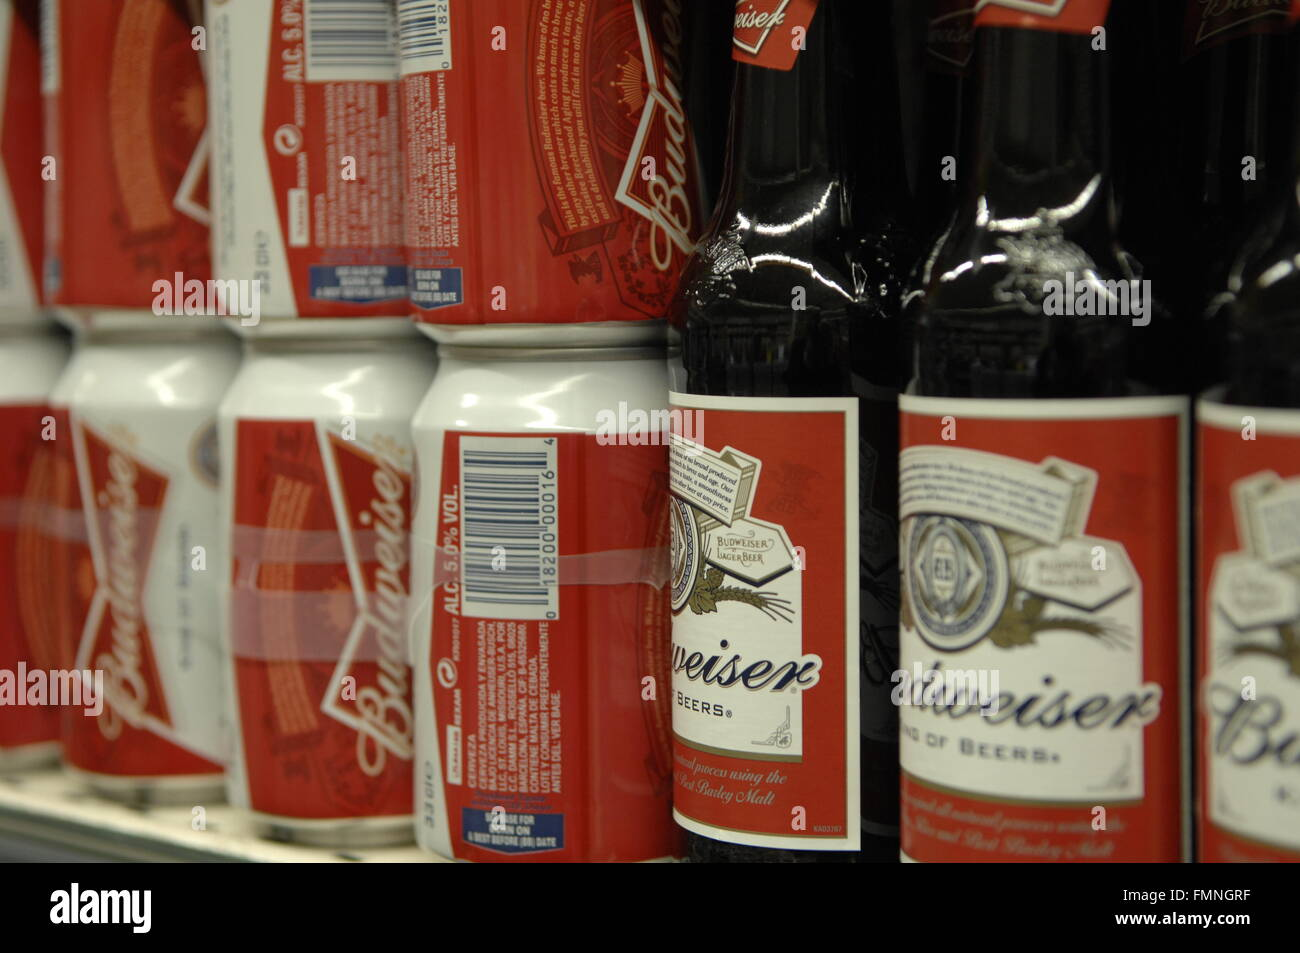 A side on image of bottles and cans of Budweiser, produced by American brewer Anheuser-Busch - Stock Image